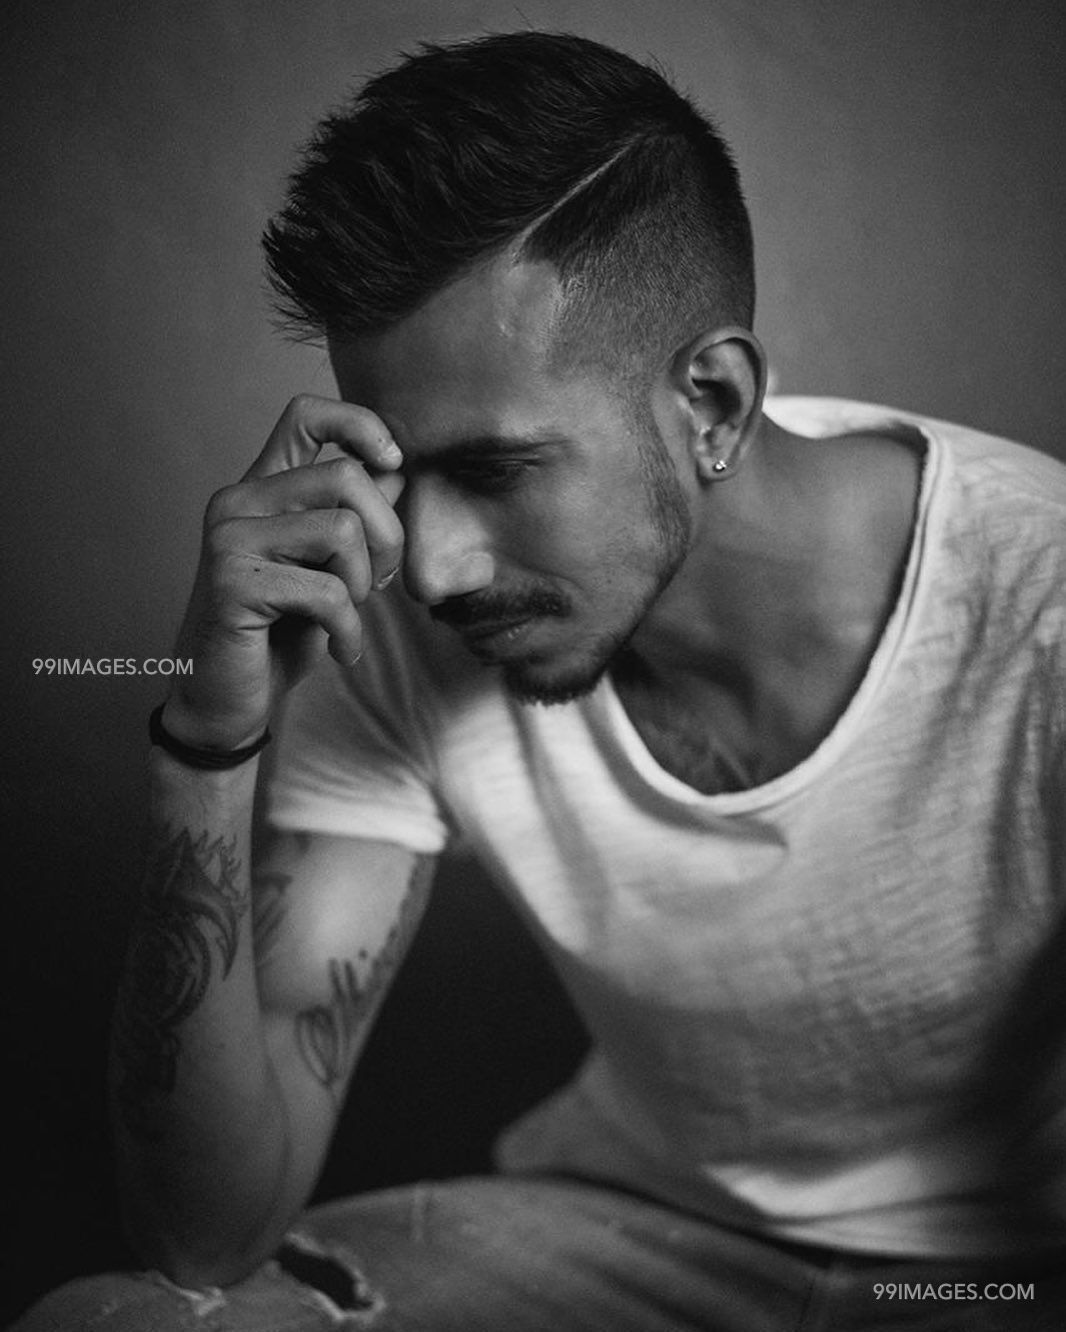 Yuzvendra Chahal Photoshoot Images & HD Wallpapers (1080p) (16837) - Yuzvendra Chahal